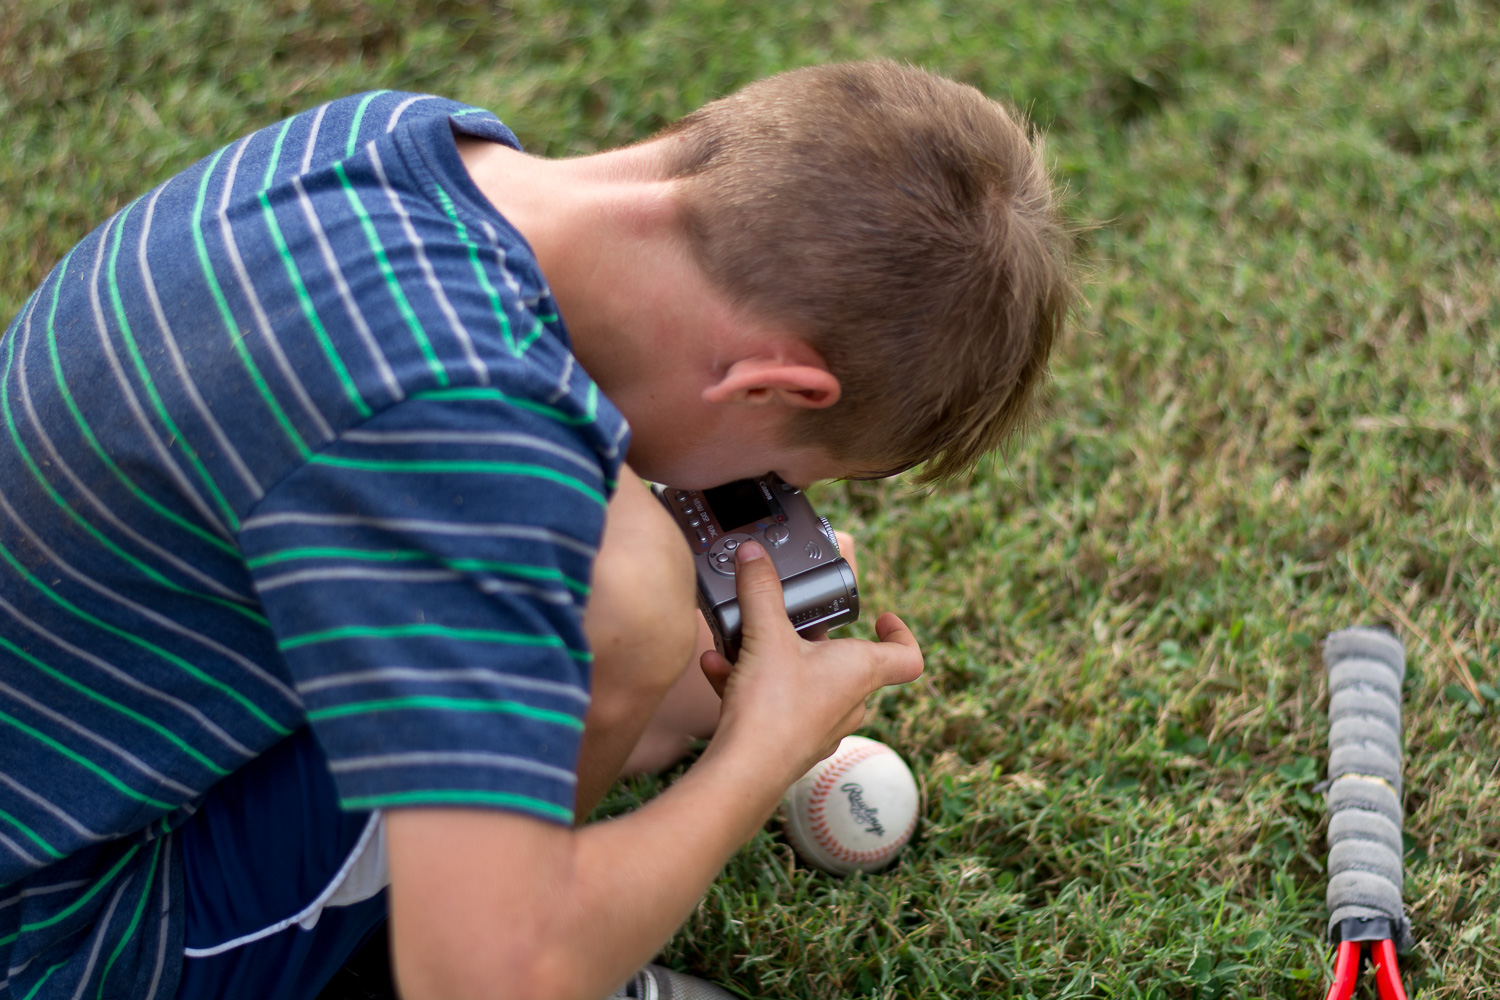 How to Get Kids Interested in Photography 6